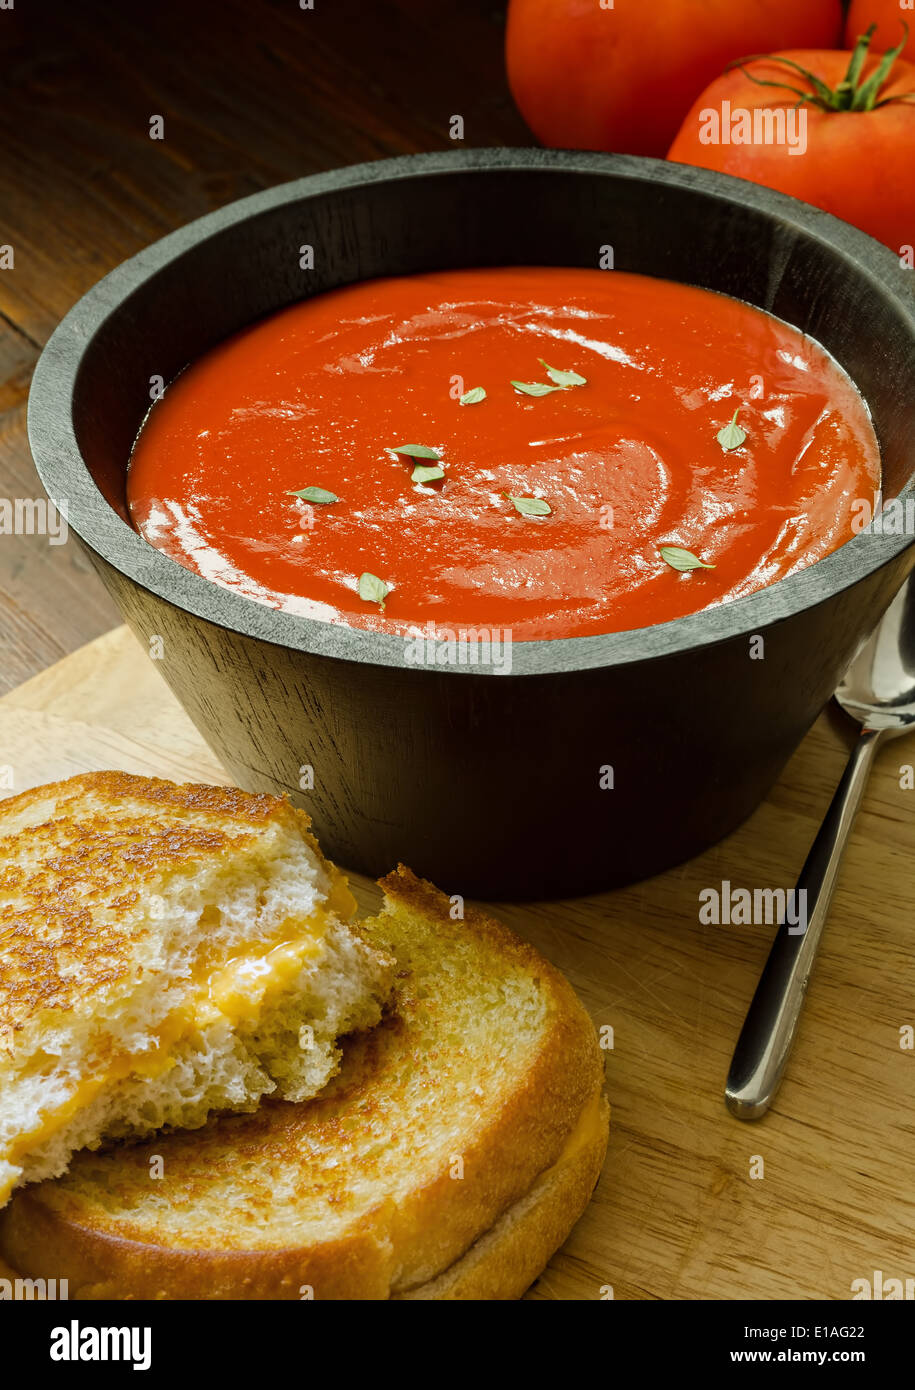 A hearty bowl of home made tomato soup and a grilled cheese sandwich. - Stock Image